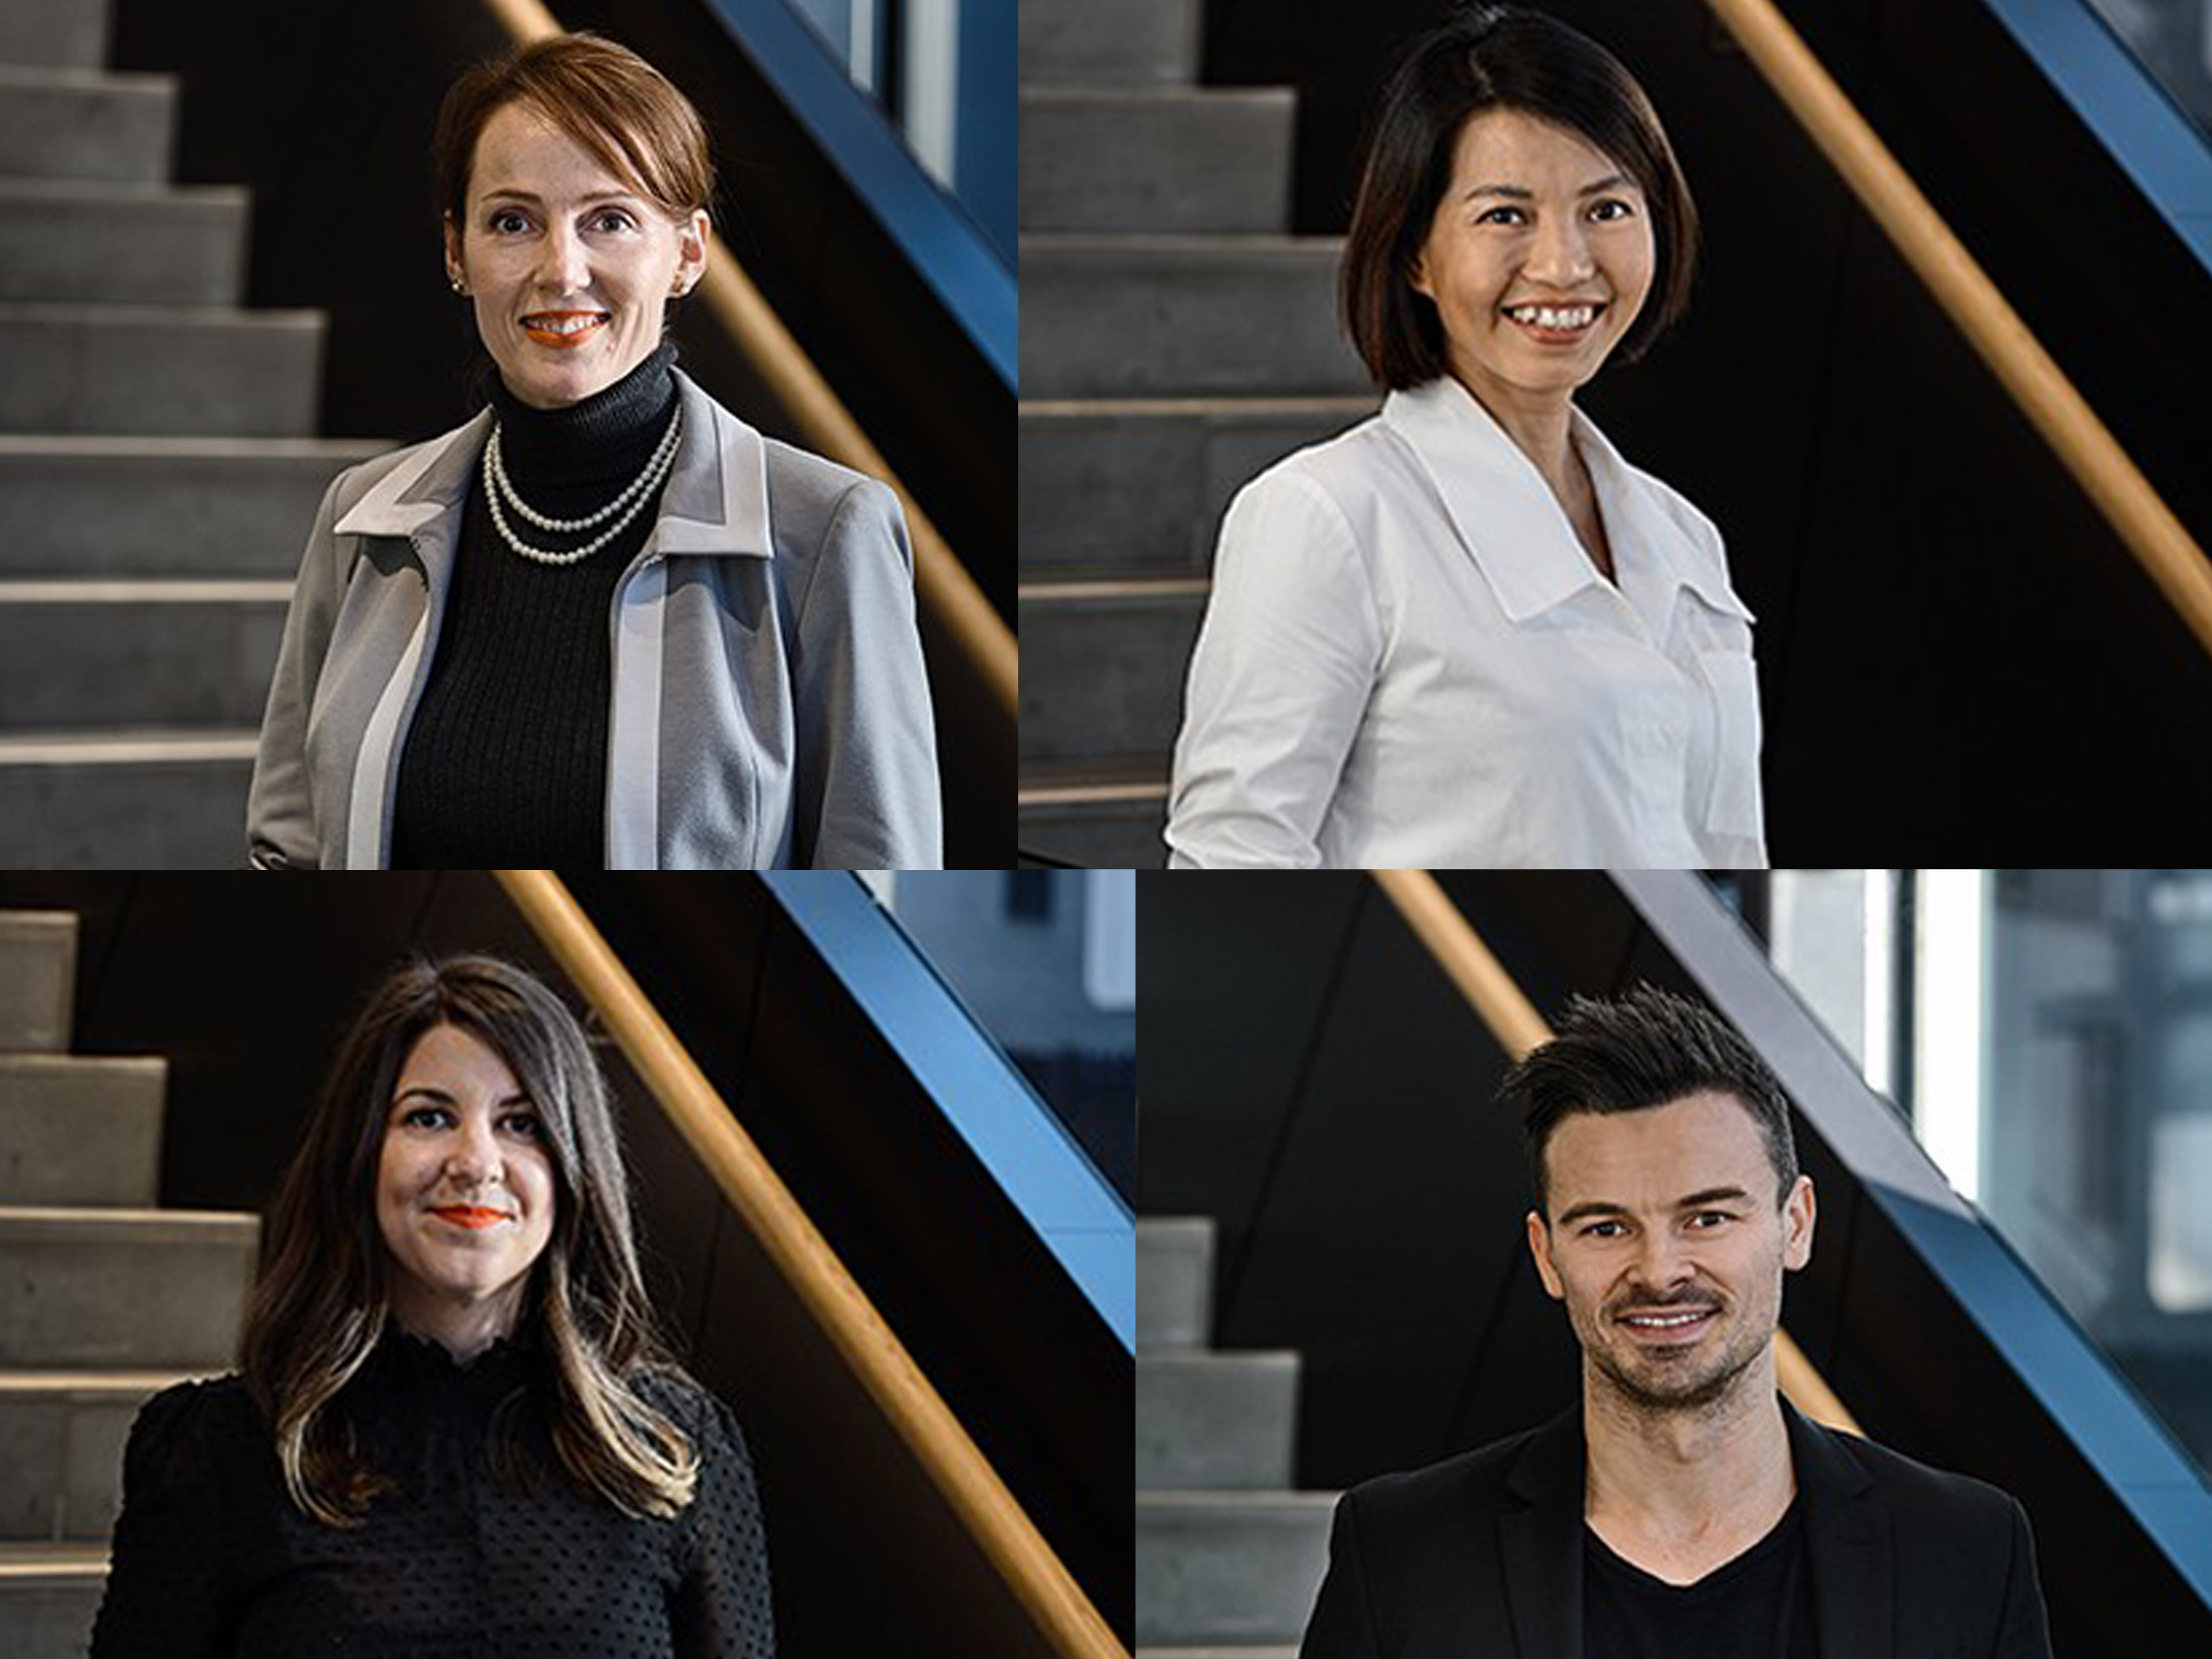 From left to right: Ursula Gouws, Thanh Nguyen, Simone Tyson and Dominic Gaetani. Image: Supplied